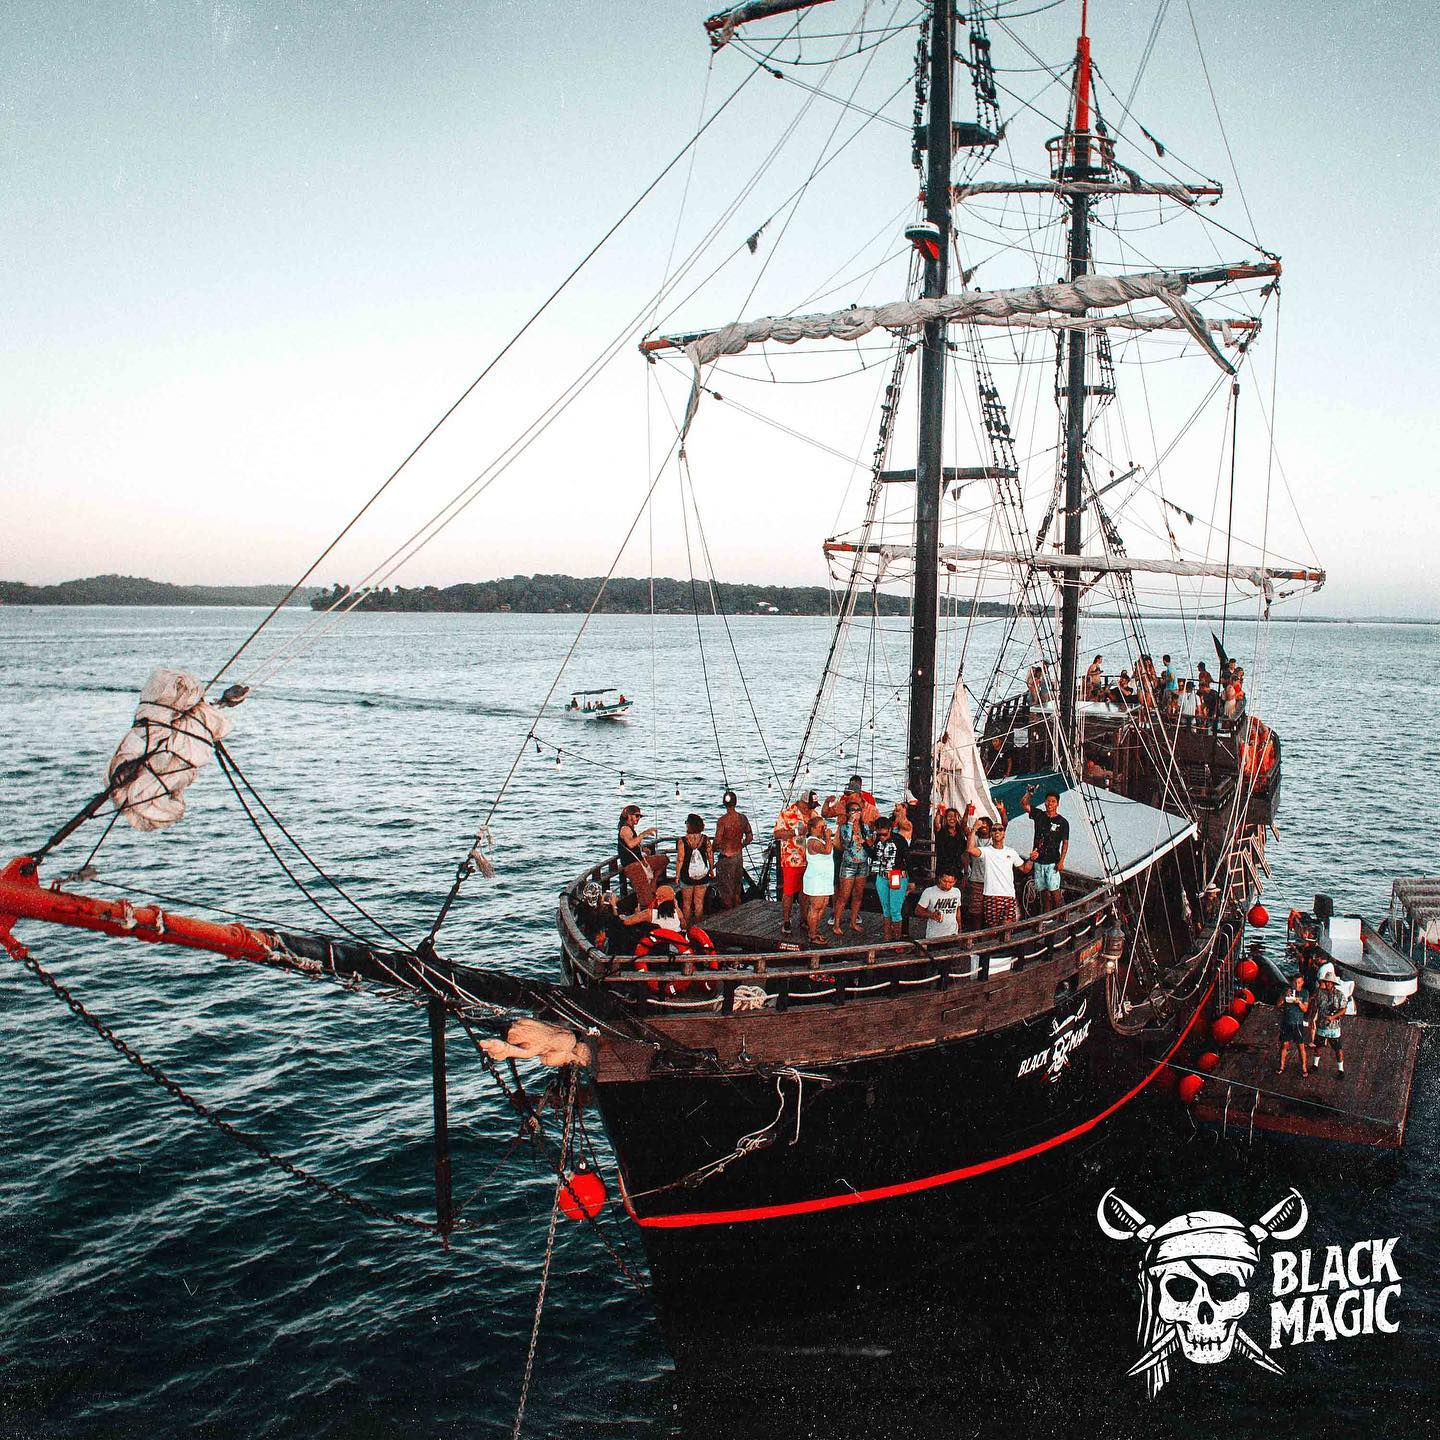 b;lack magic bocas pirate ship in bocas del toro with people hanging out on board